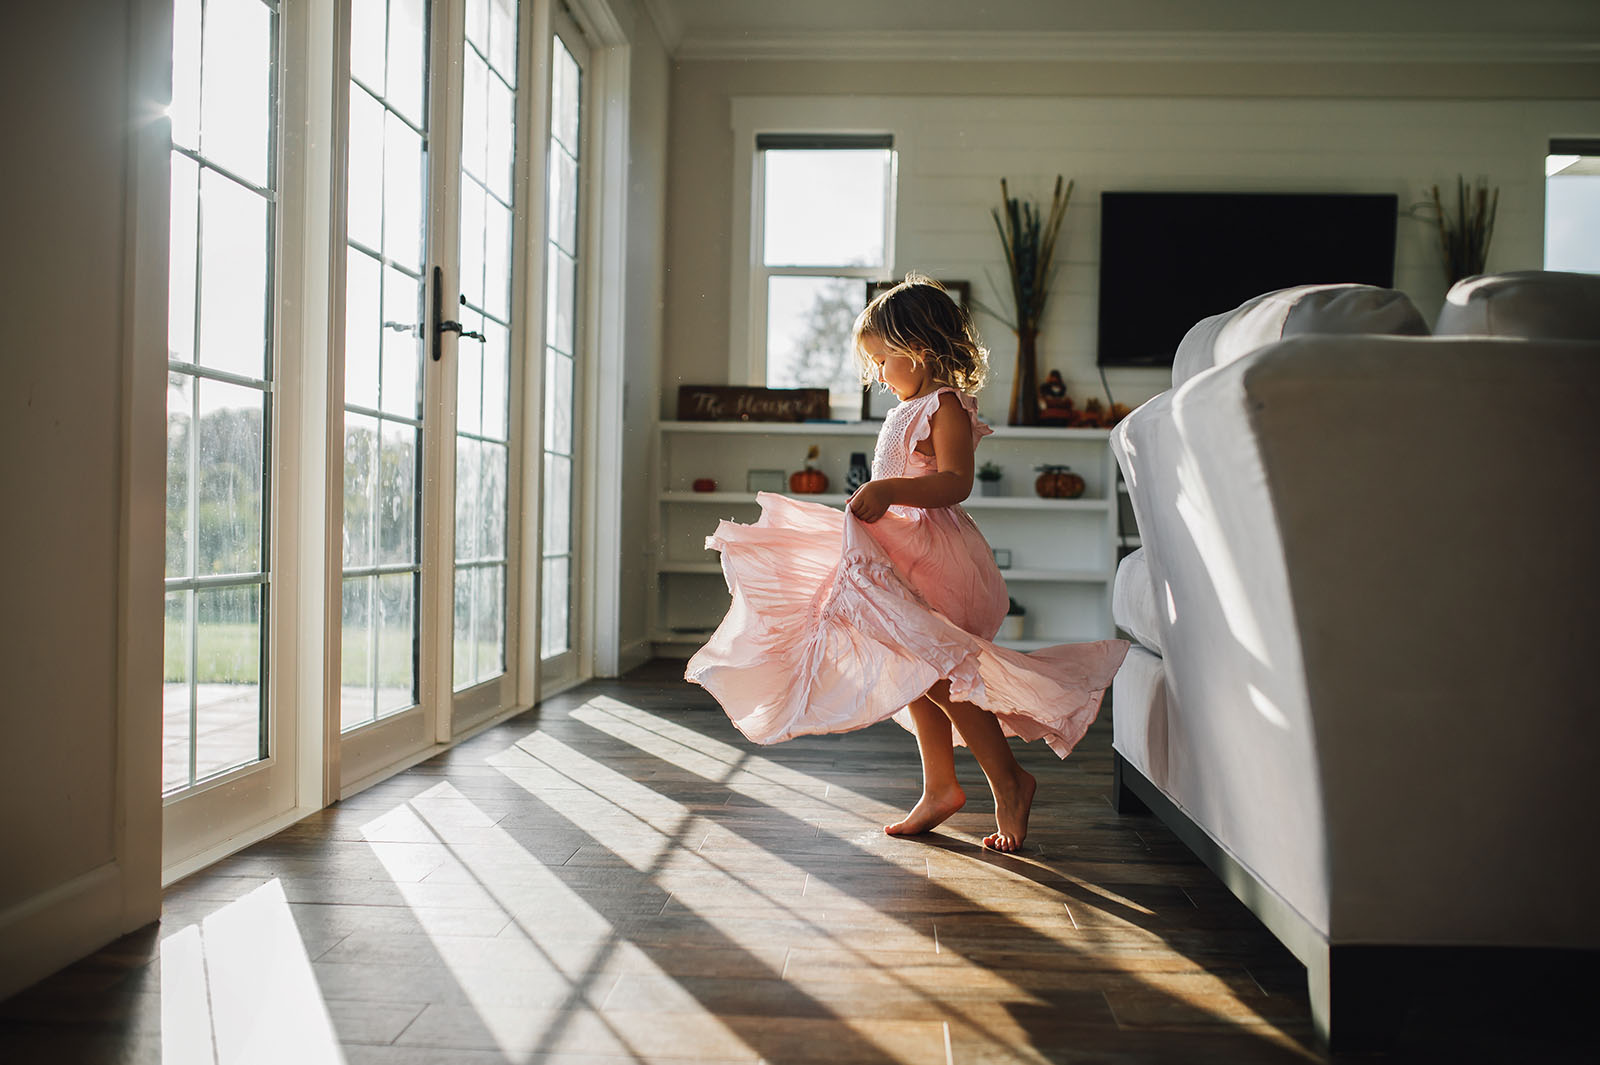 Creative use of window light, little girl twirling